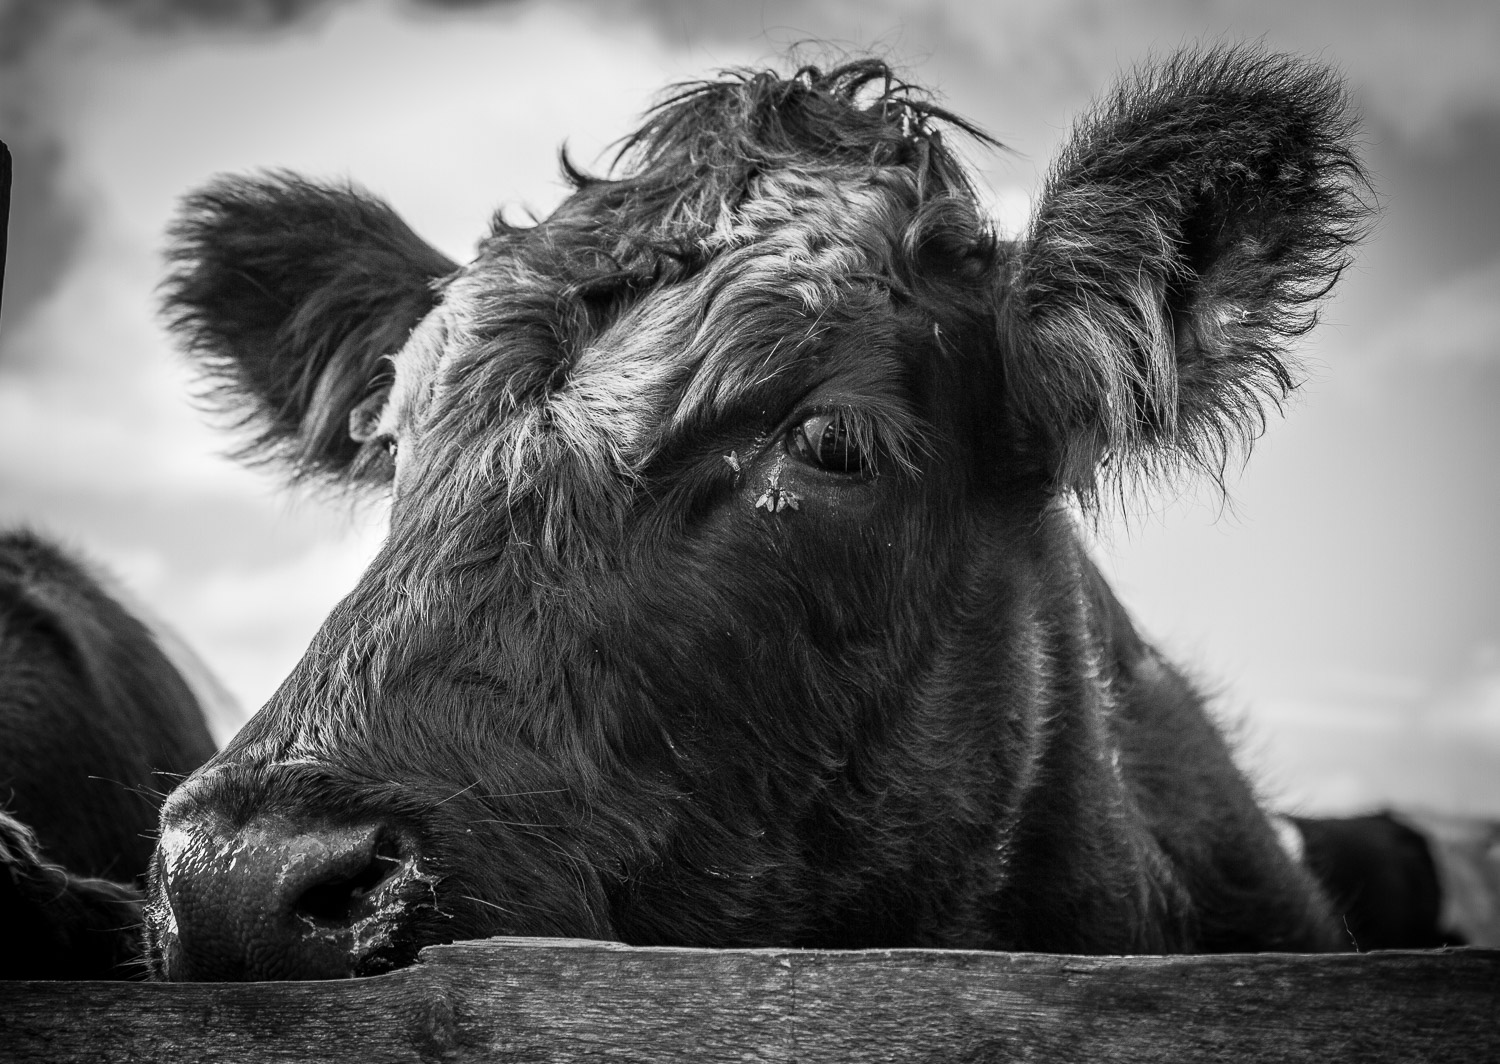 A Black And White Photograph Of A Cow Behind A Fence Looking At The Camera In Gloucestershire, England.